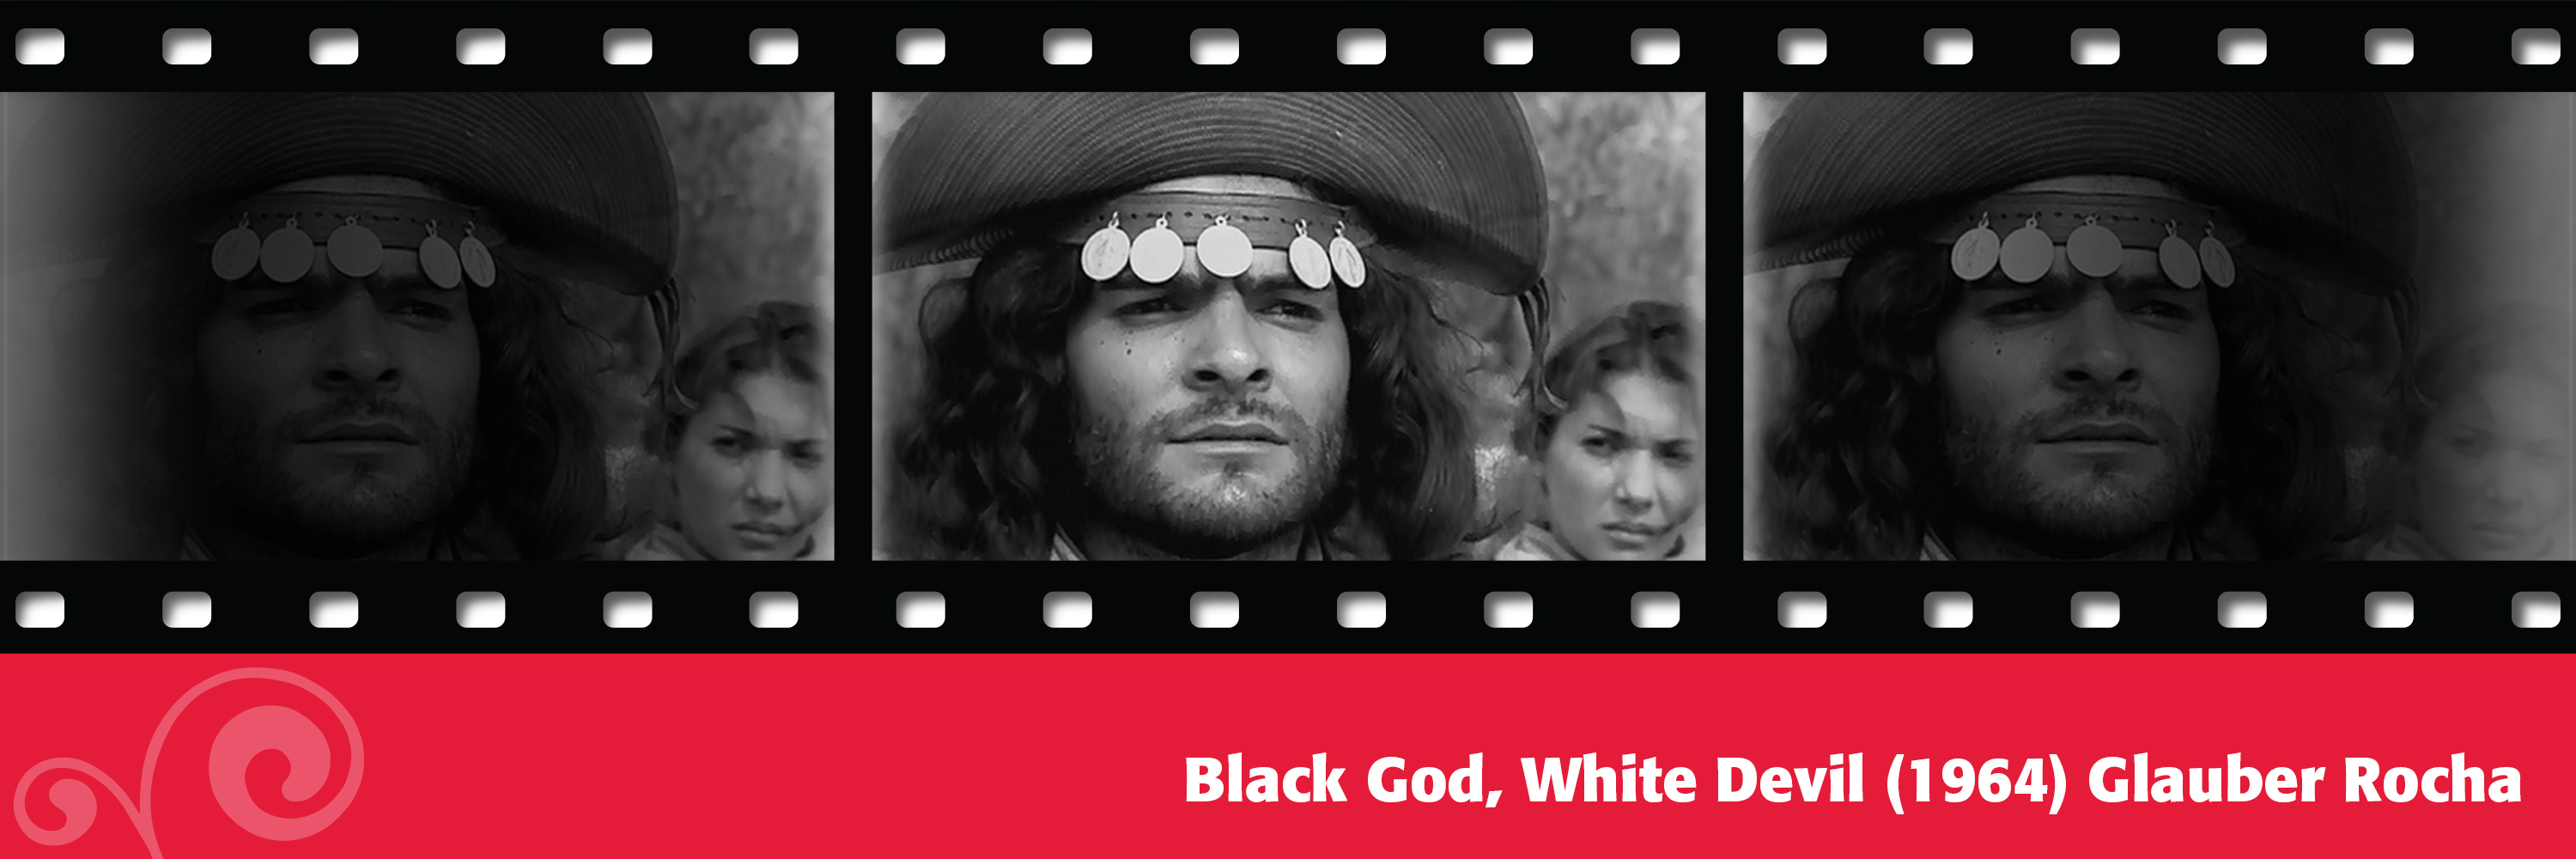 Black God, White Devil (1964) Glauber Rocha